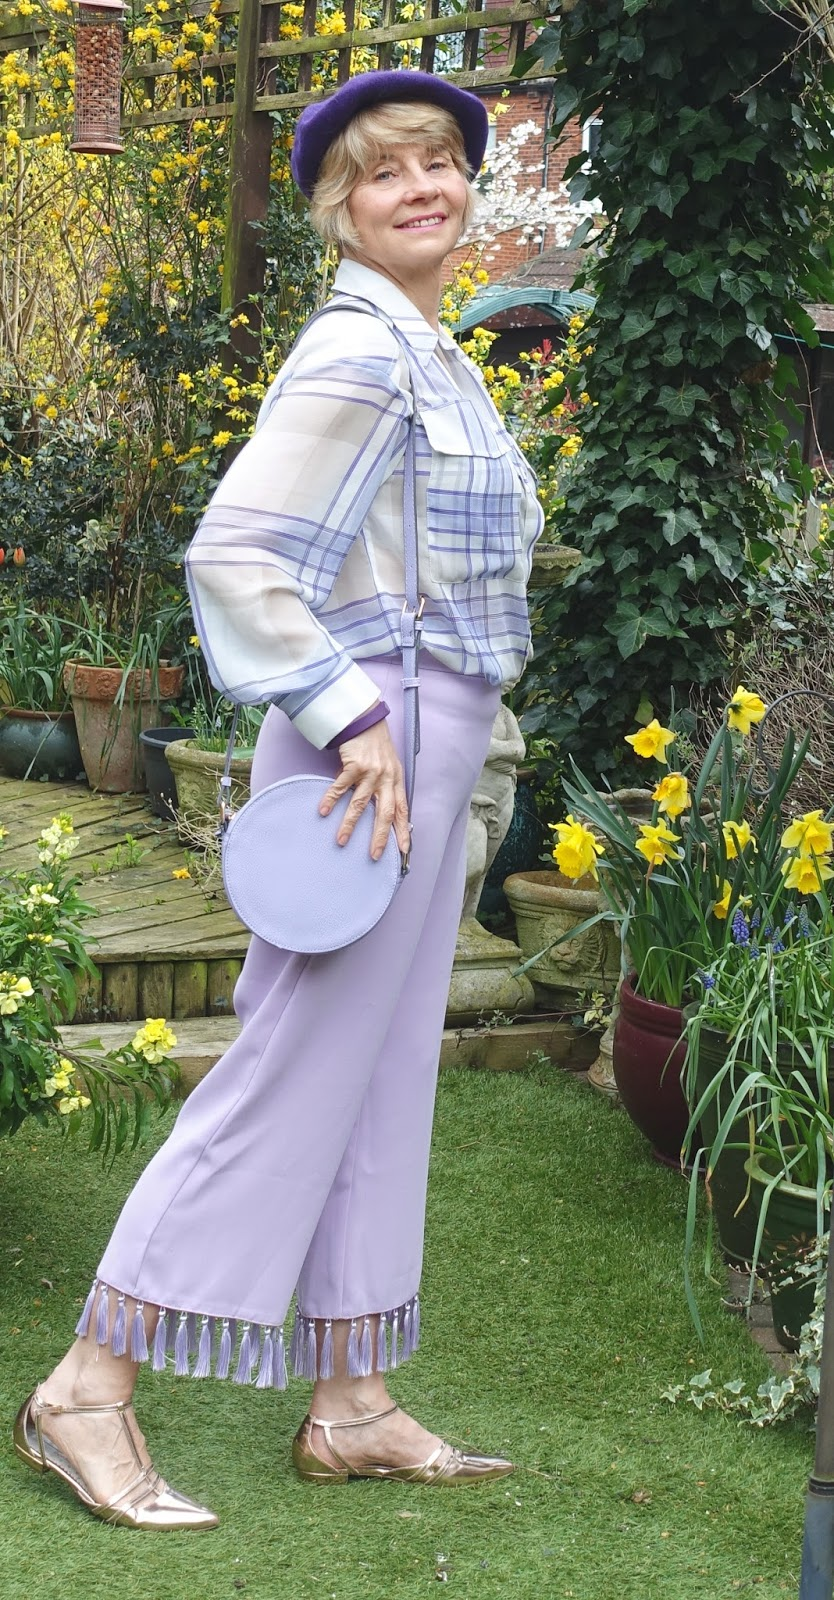 Styling a white and lilac striped blouse three ways. Bring any outfit up to date by adding inexpensive fashion bags and sunglasses.